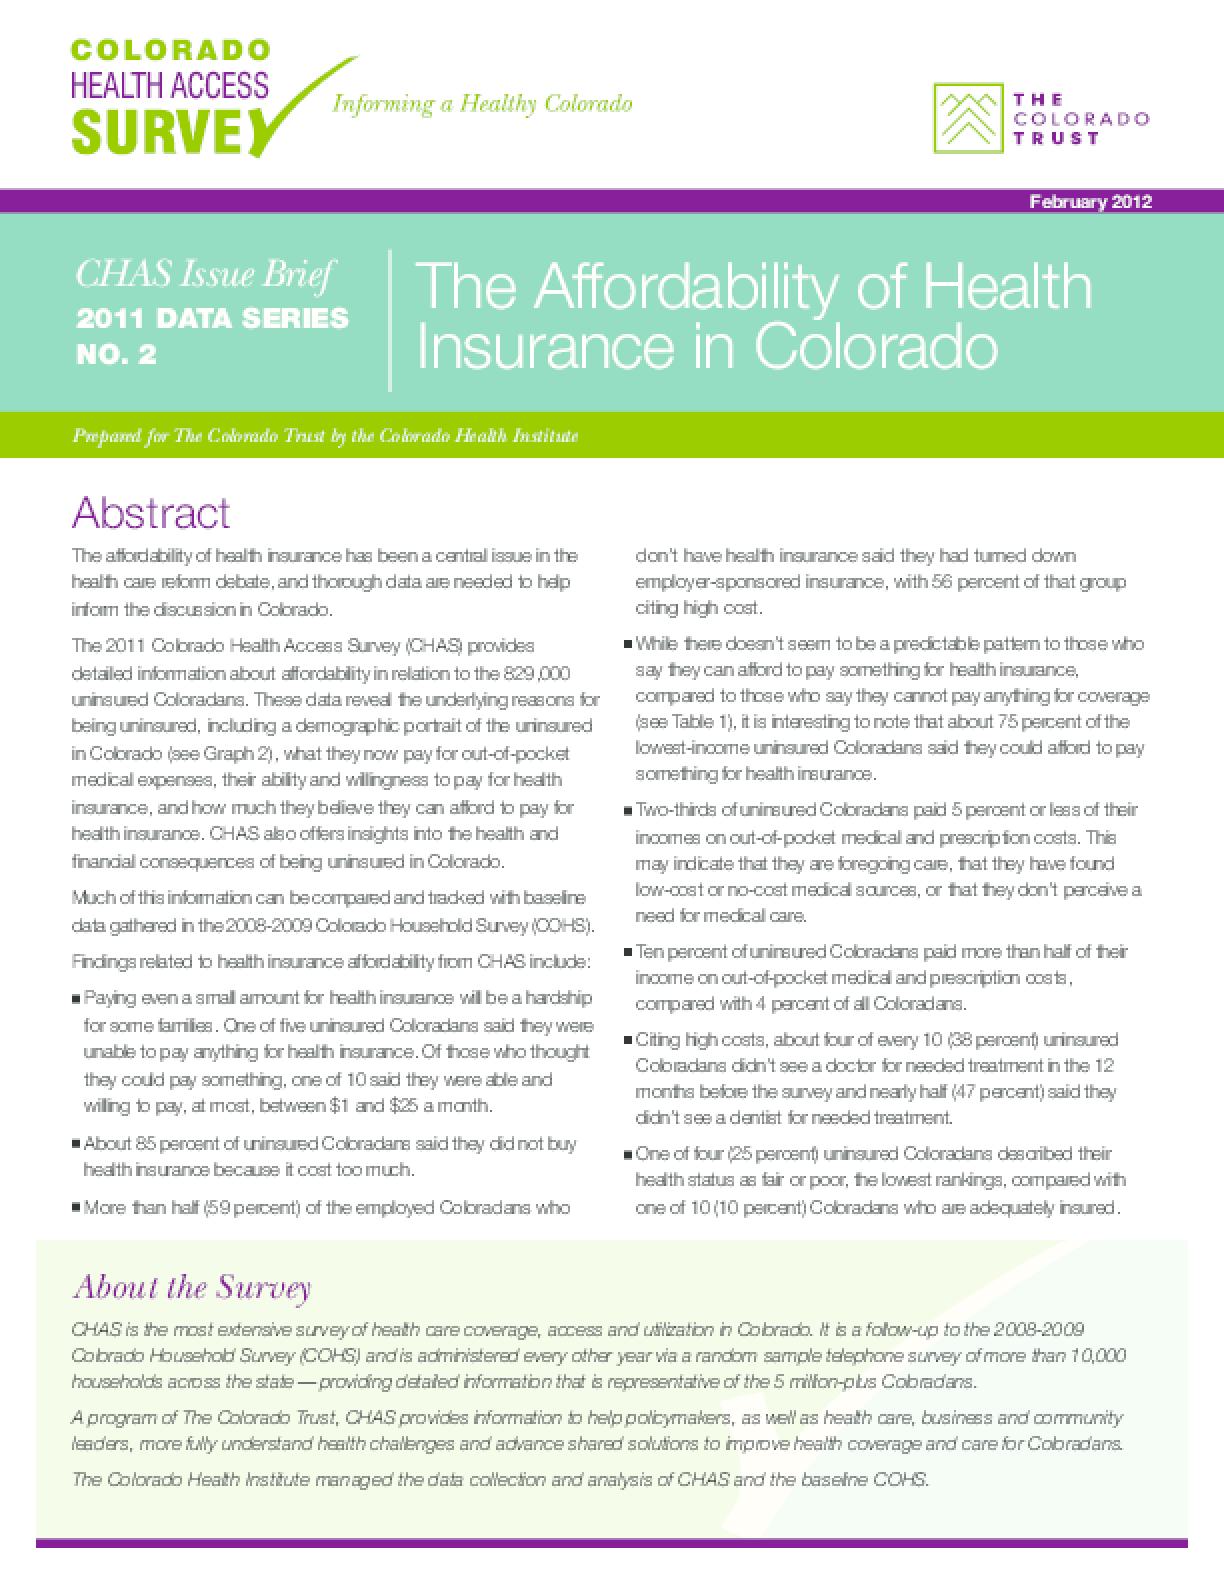 The Affordability of Health Insurance in Colorado